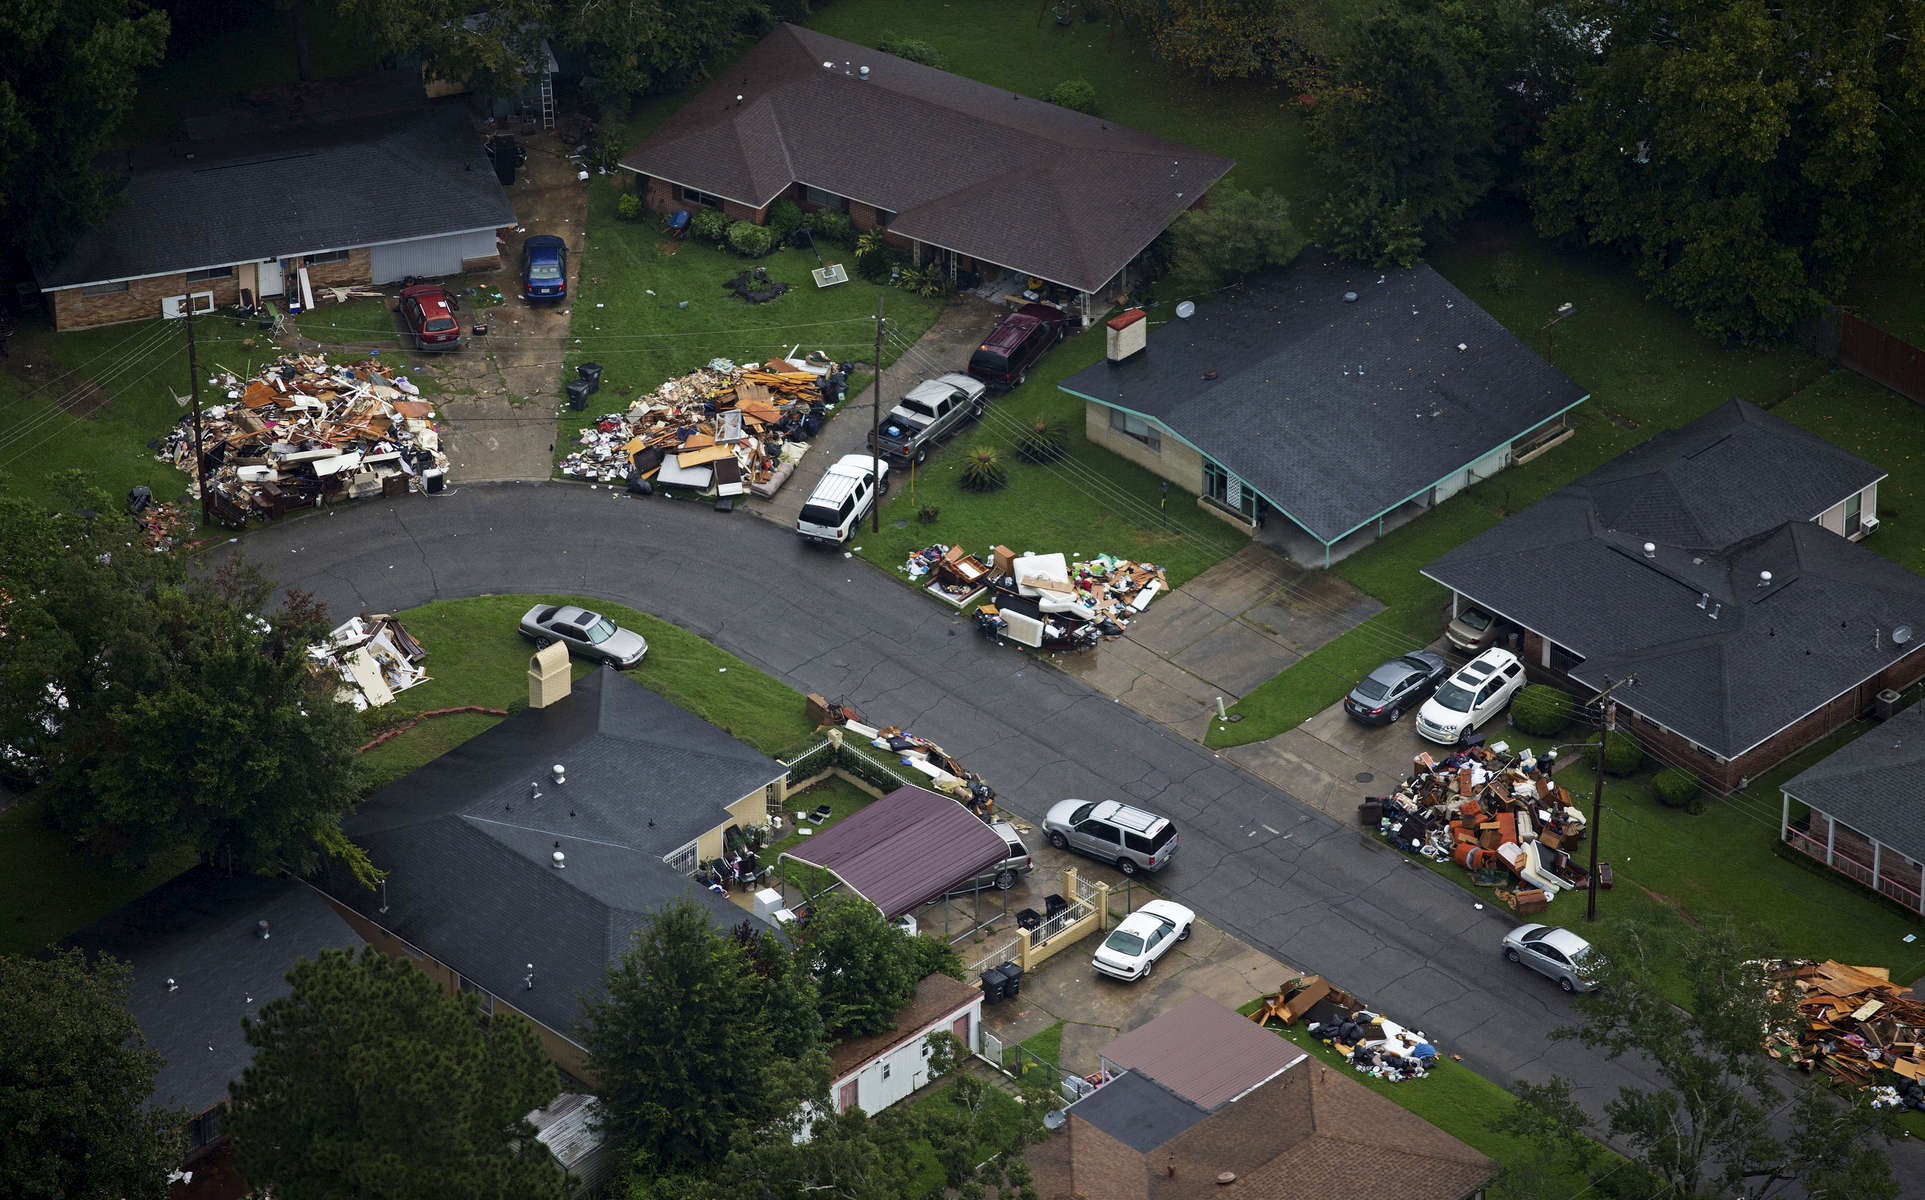 Debris from gutted homes can be seen in front of homes in this areal view of Baton Rouge, La. USA, Thursday, Aug. 25, 2016. President Obama signed a Louisiana disaster declaration on Aug. 14, making federal disaster funding available. (AP Photo/Max Becherer)